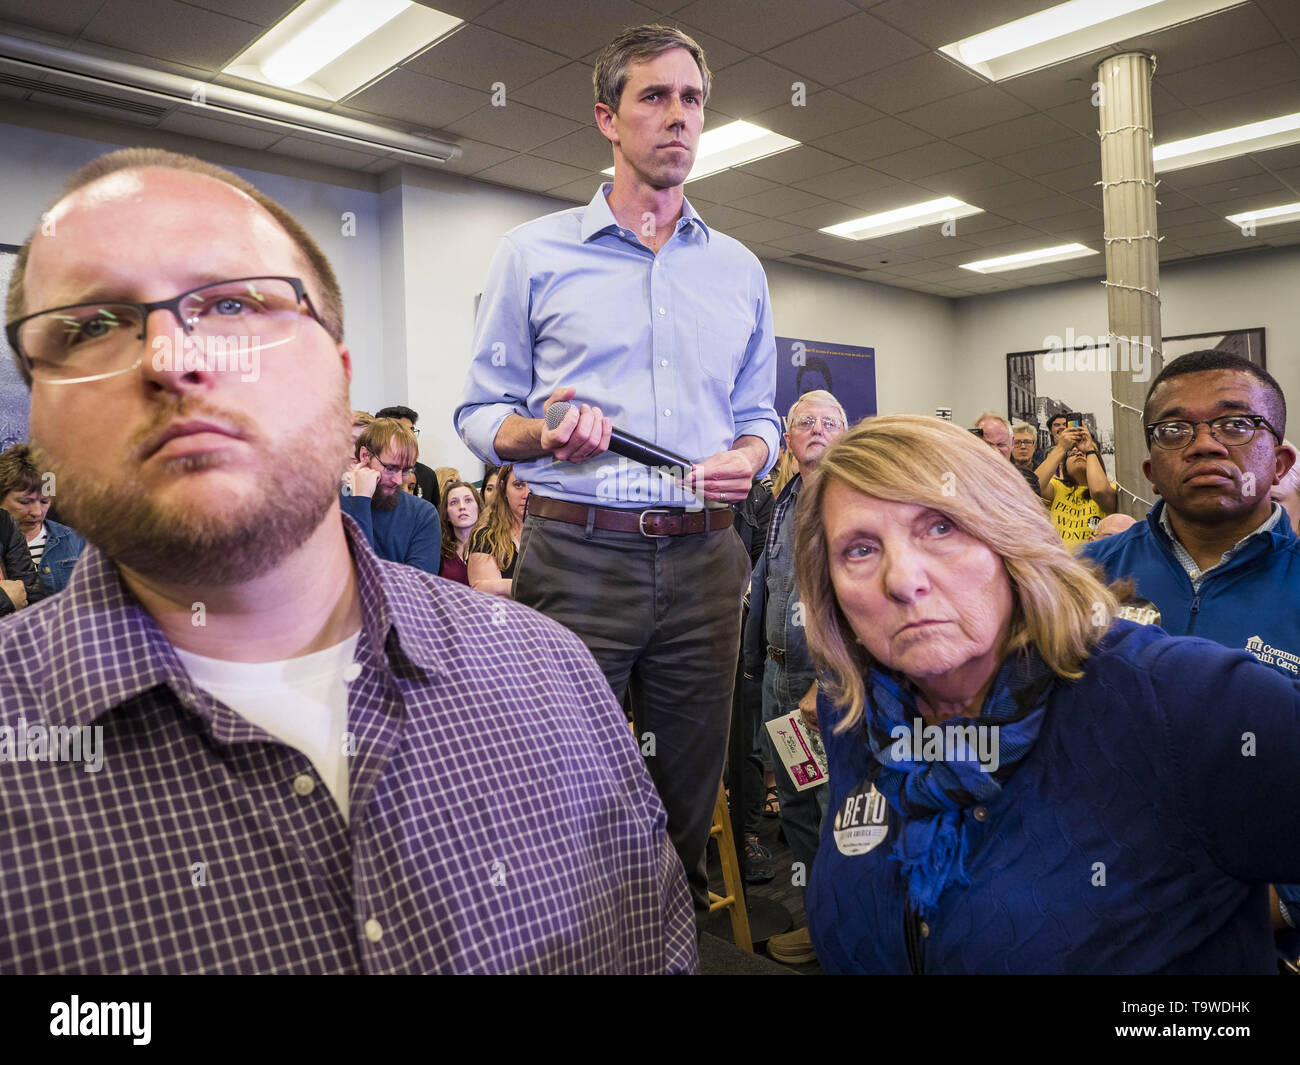 Davenport, Iowa, USA. 20th May, 2019. BETO O'ROURKE, (center) a Texas Democrat, listens to a question from an attendee during a town hall style campaign appearance in Davenport. About 200 people came to the event in the River Music Experience, a downtown venue. O'Rourke, running to be the 2020 Democratic nominee for the US Presidency, has made climate change a central part of his campaign. He held a town hall in Davenport Monday. Iowa traditionally hosts the the first election event of the presidential election cycle. The Iowa Caucuses will be on Feb. 3, 2020. (Credit Image: © Jack Kurtz/ZUMA - Stock Image